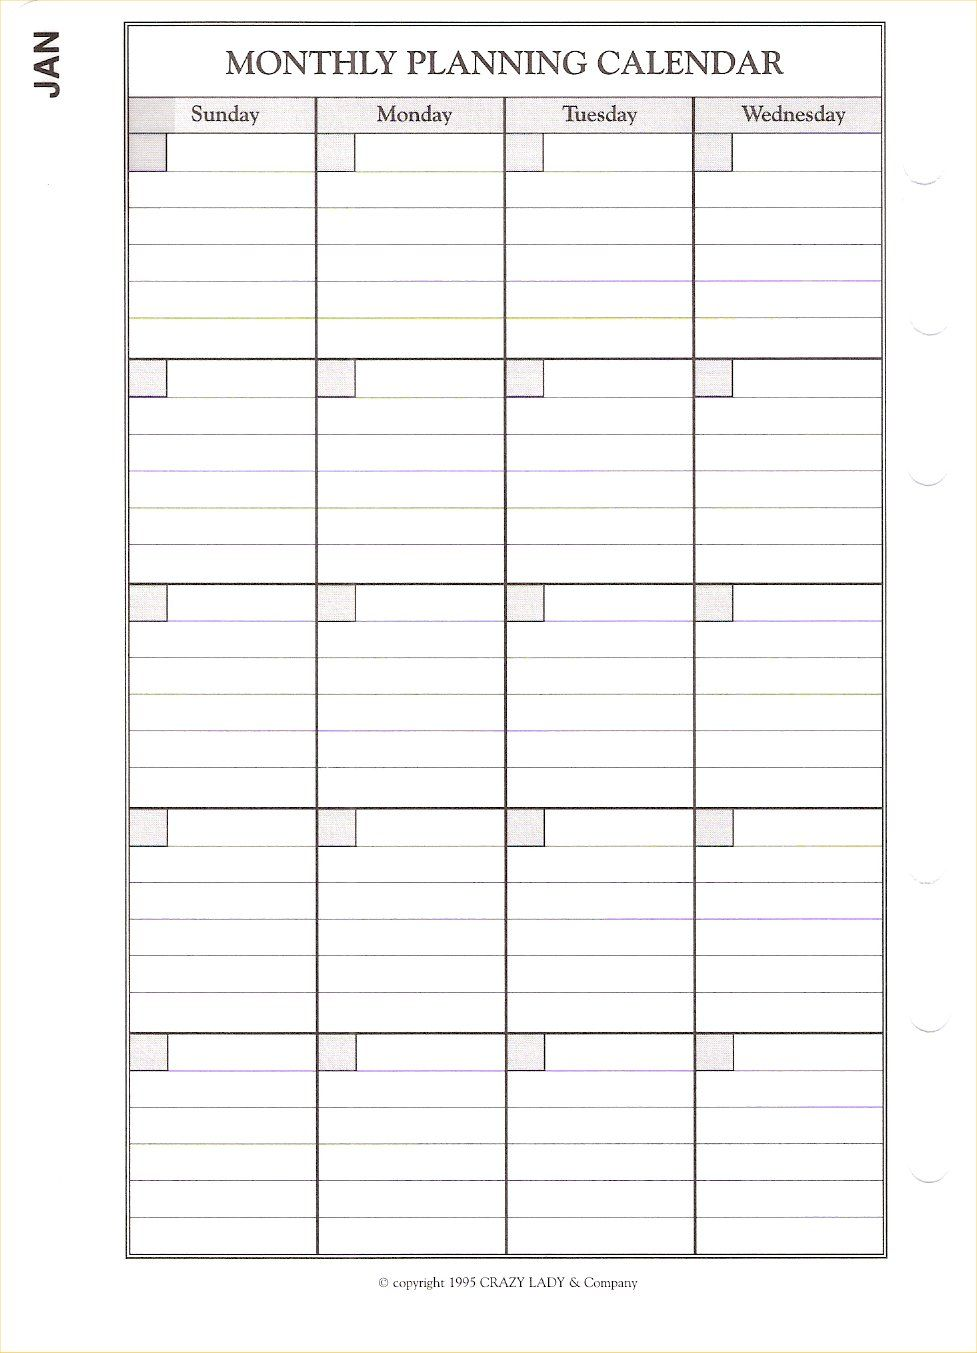 Plan Calender Monthly Planning Calendar 4 00 Sold Out